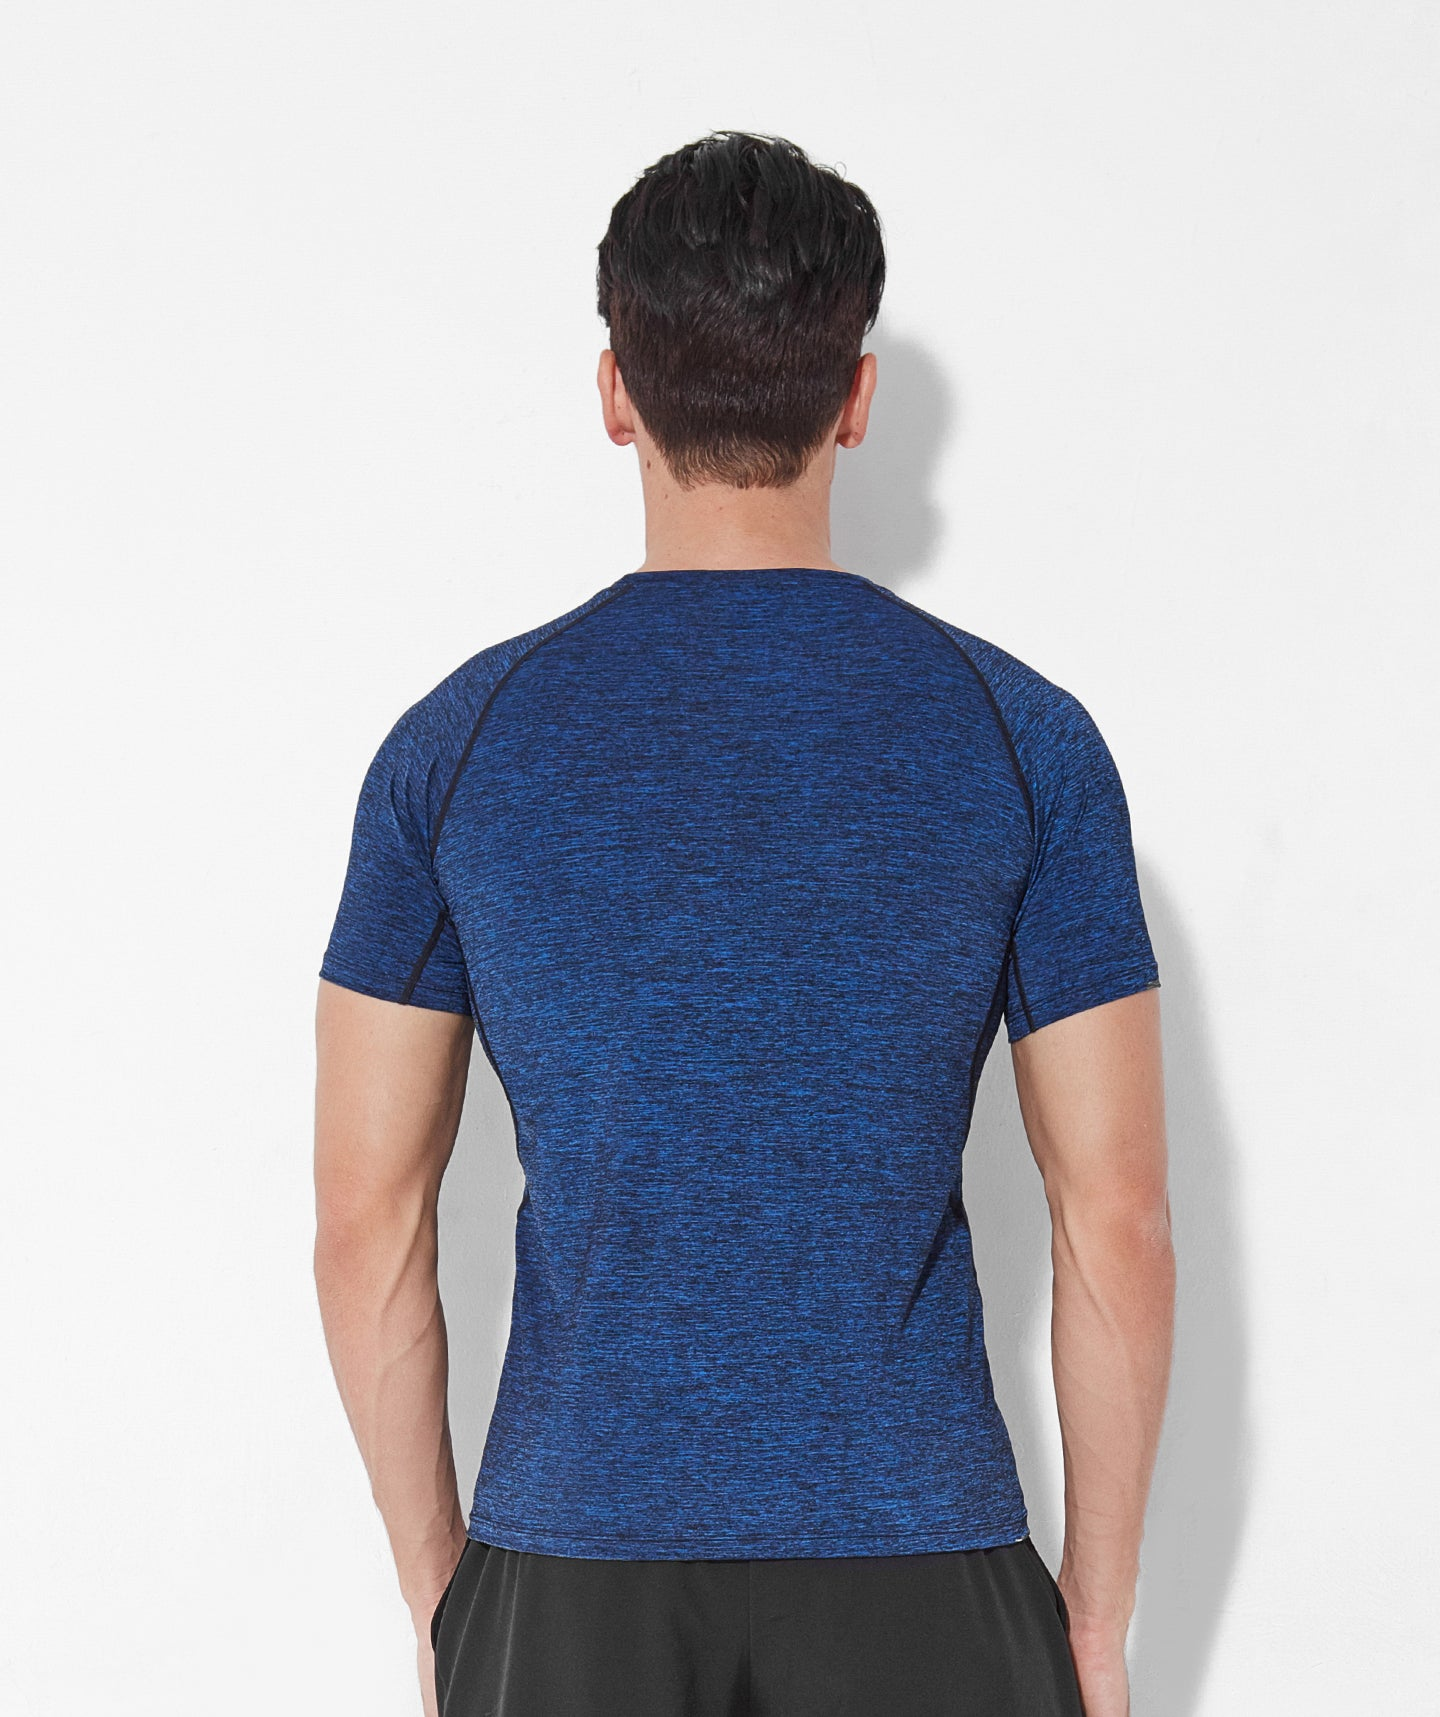 Focus Rapid Short Sleeve Tee - Nathan Blue